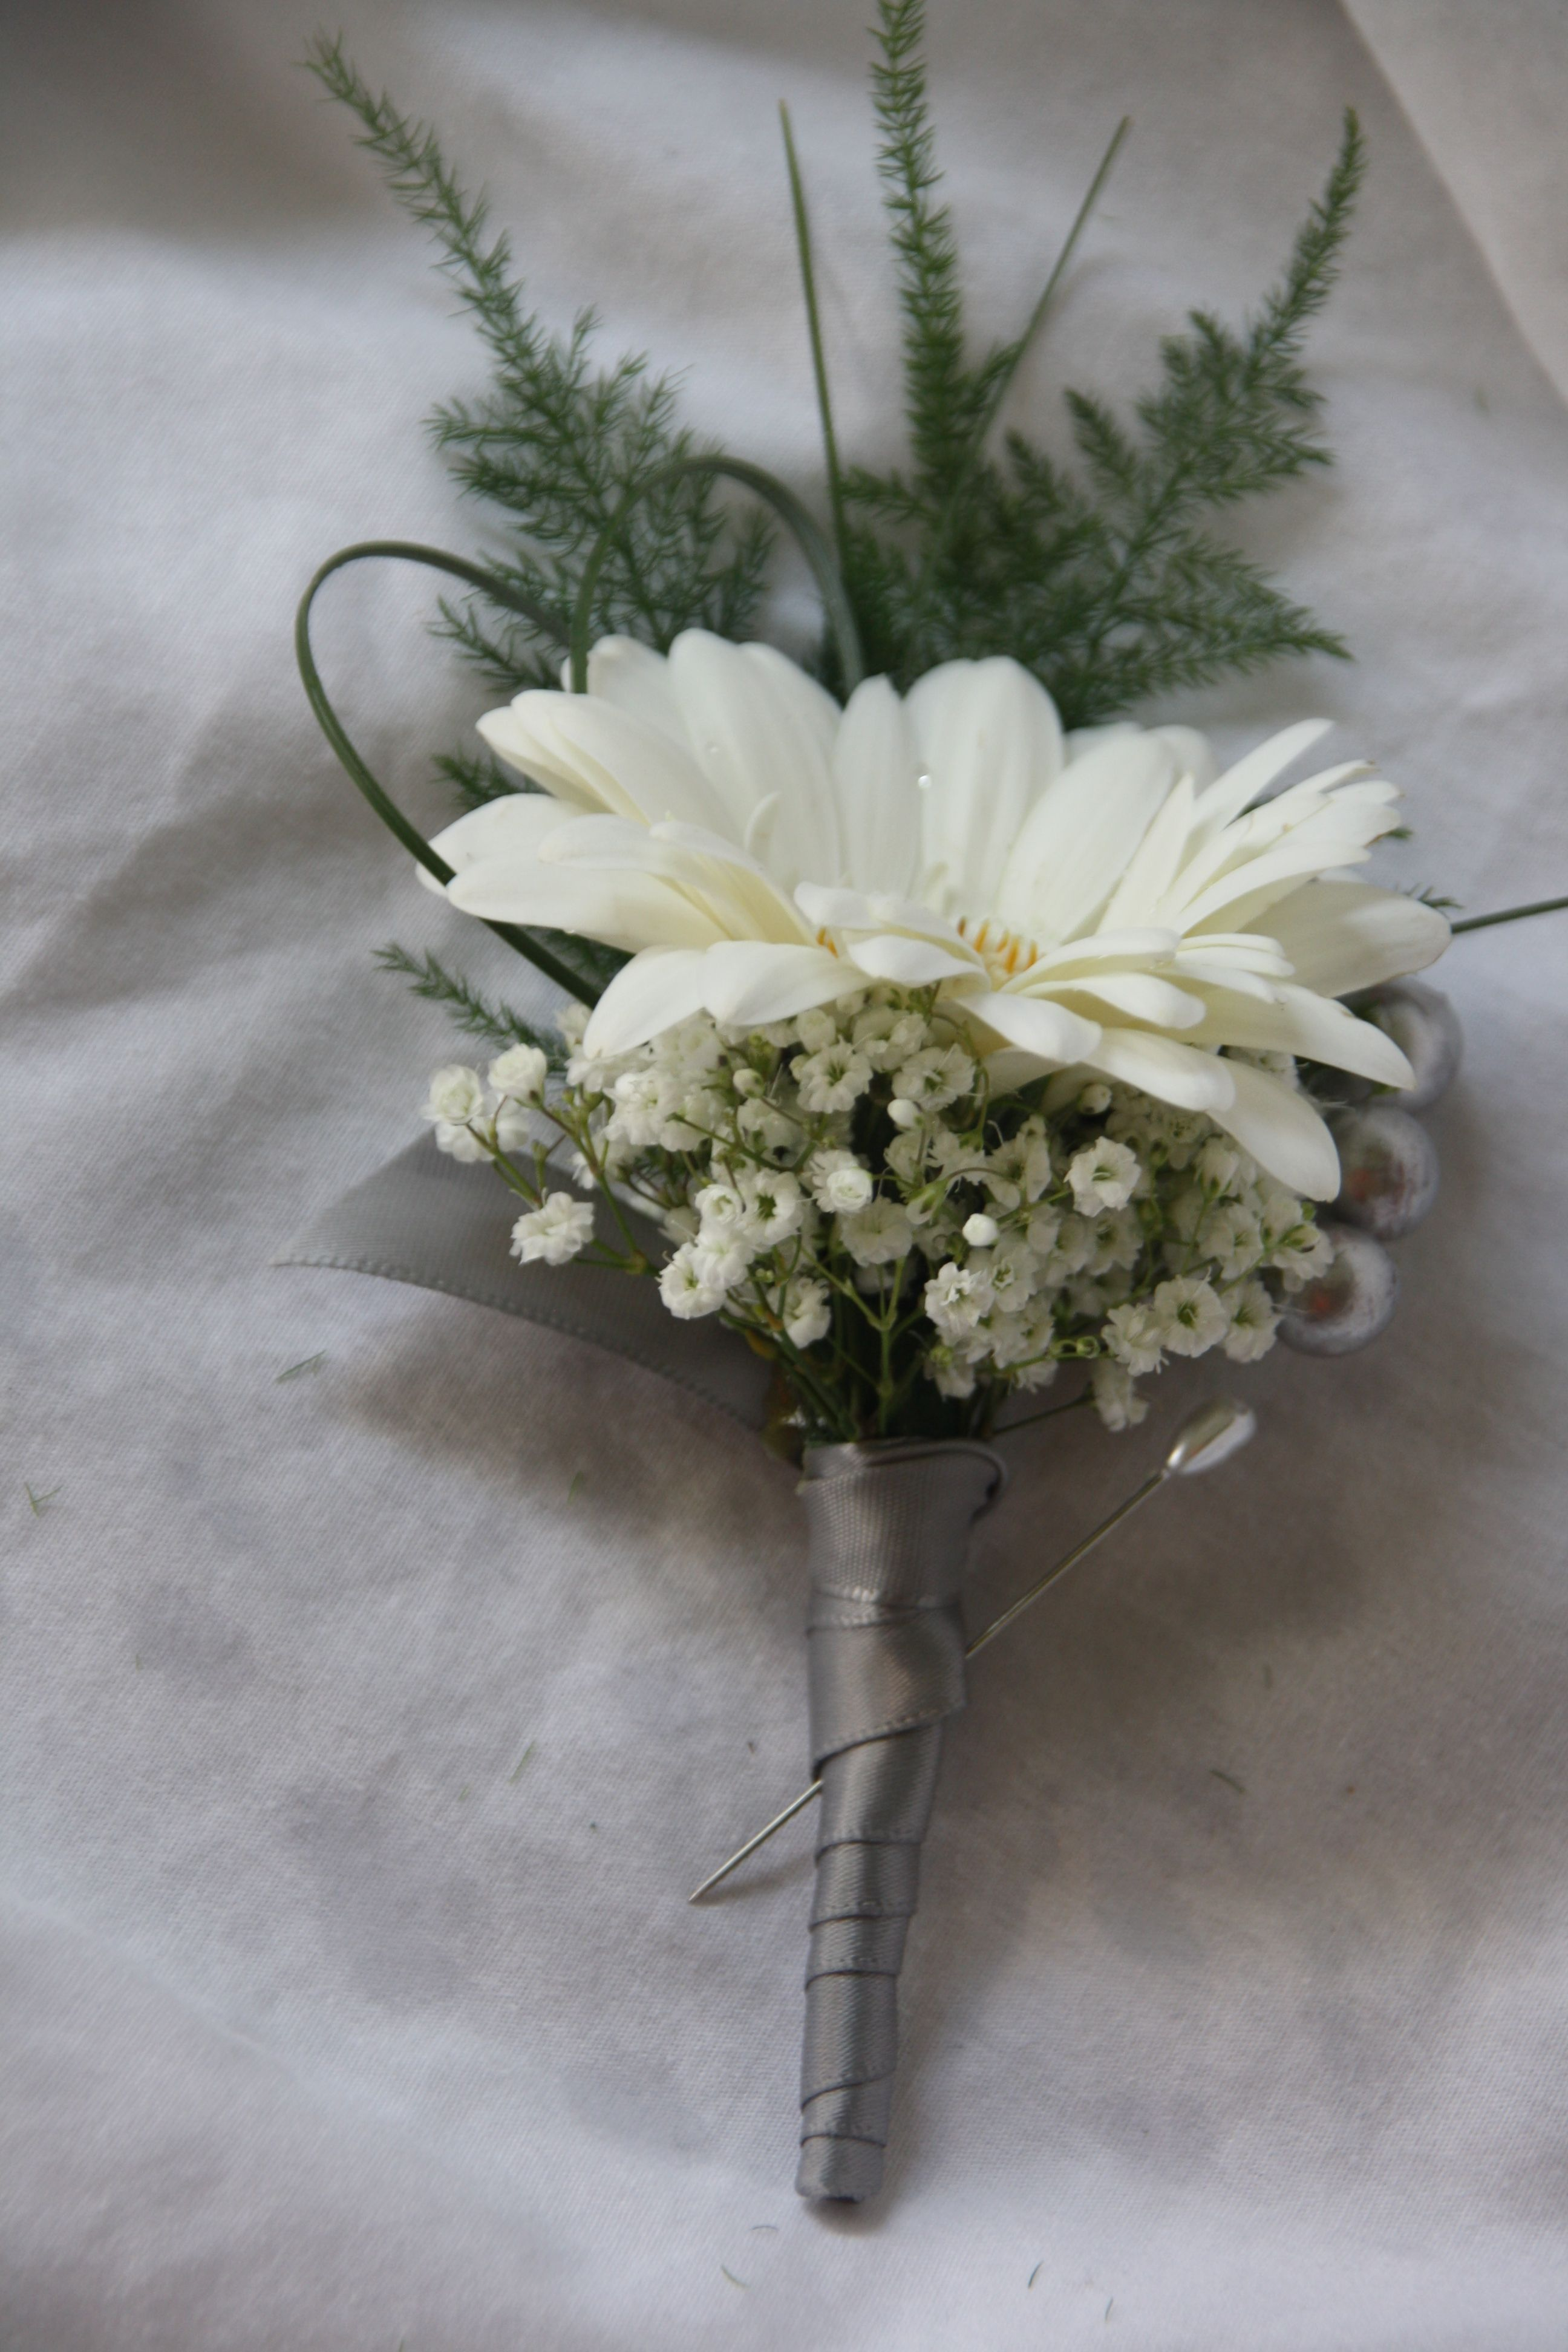 Gerber daisy boutonniere, but with blue accents instead of ...